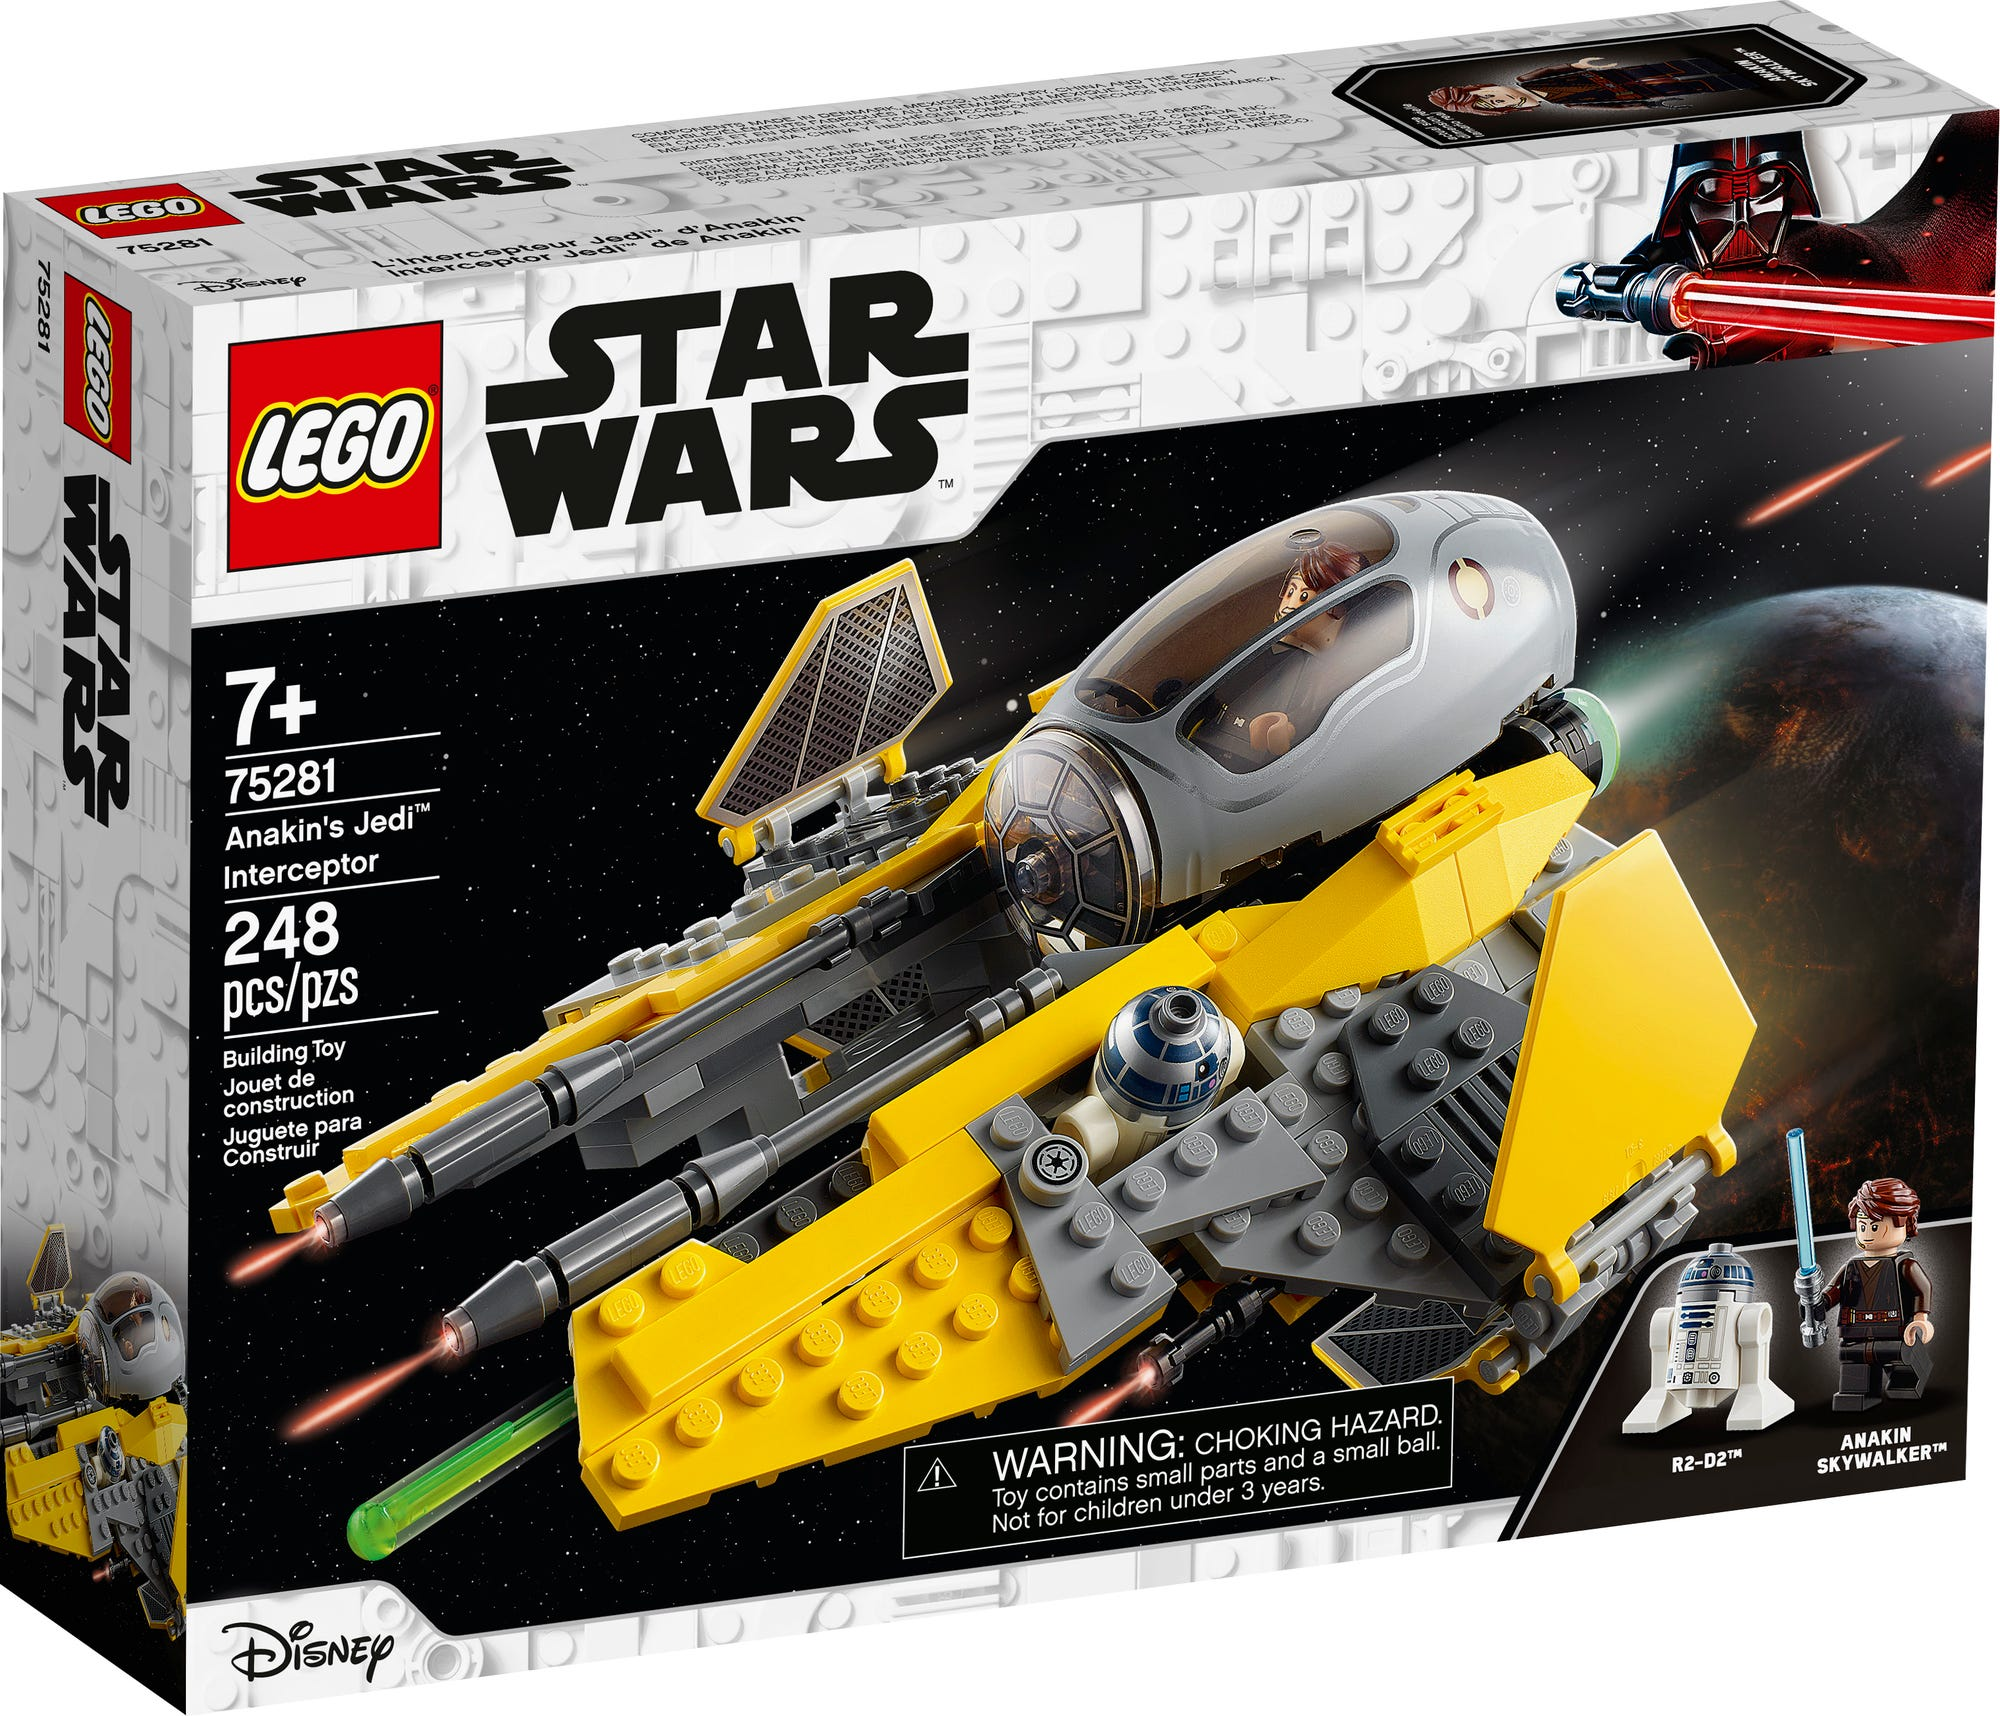 LEGO 75281 Star Wars Anakins Jedi Interceptor 2